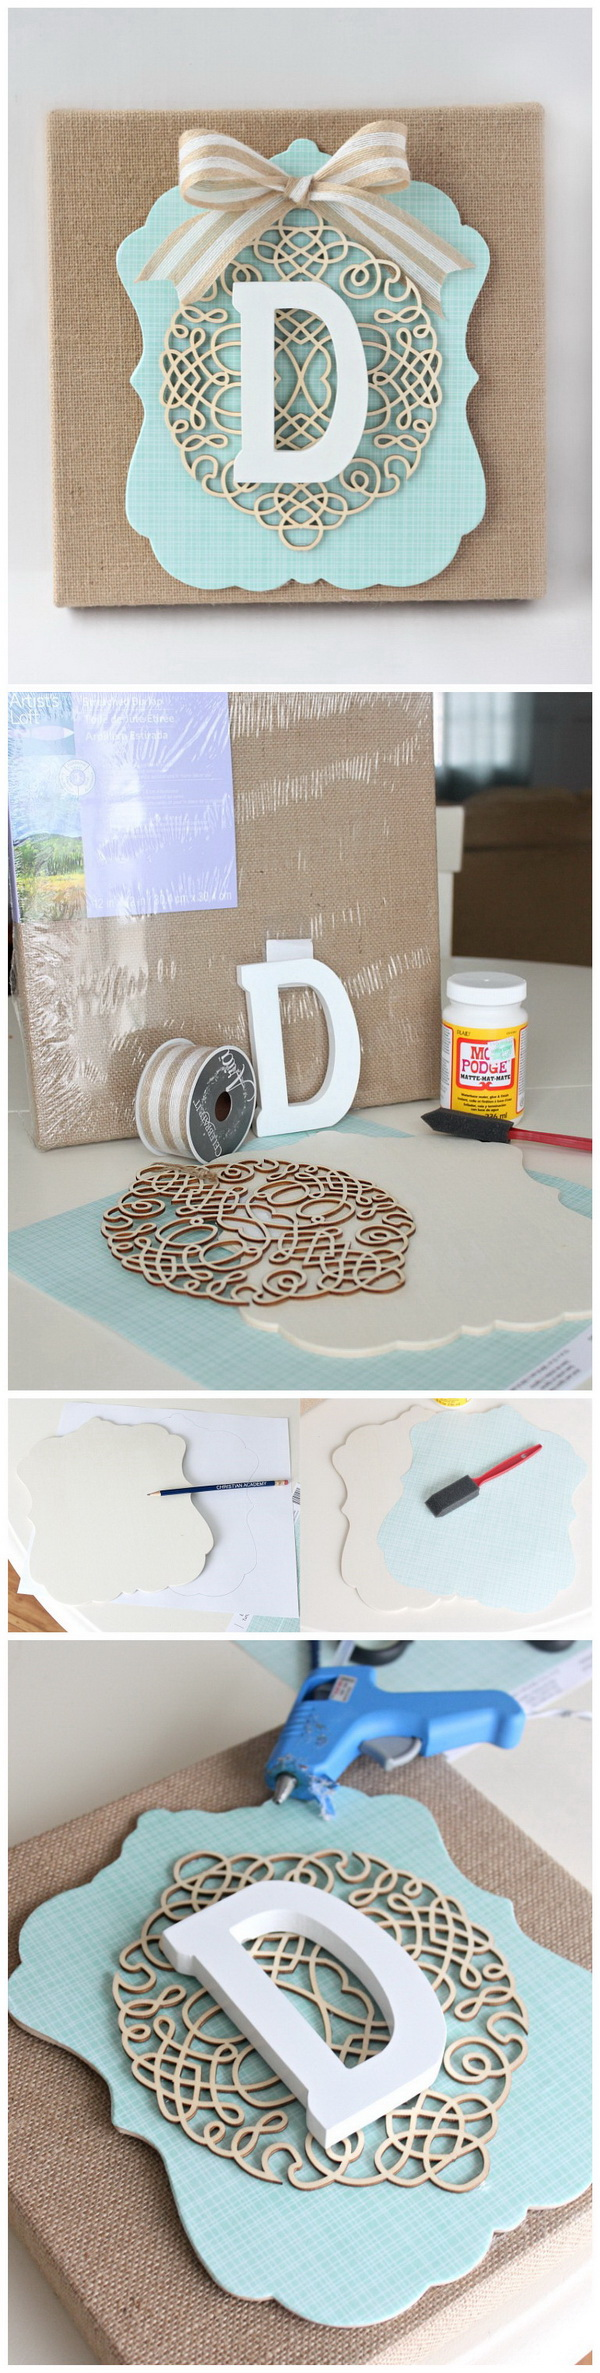 20+ Pretty DIY Decorative Letter Ideas & Tutorials ...